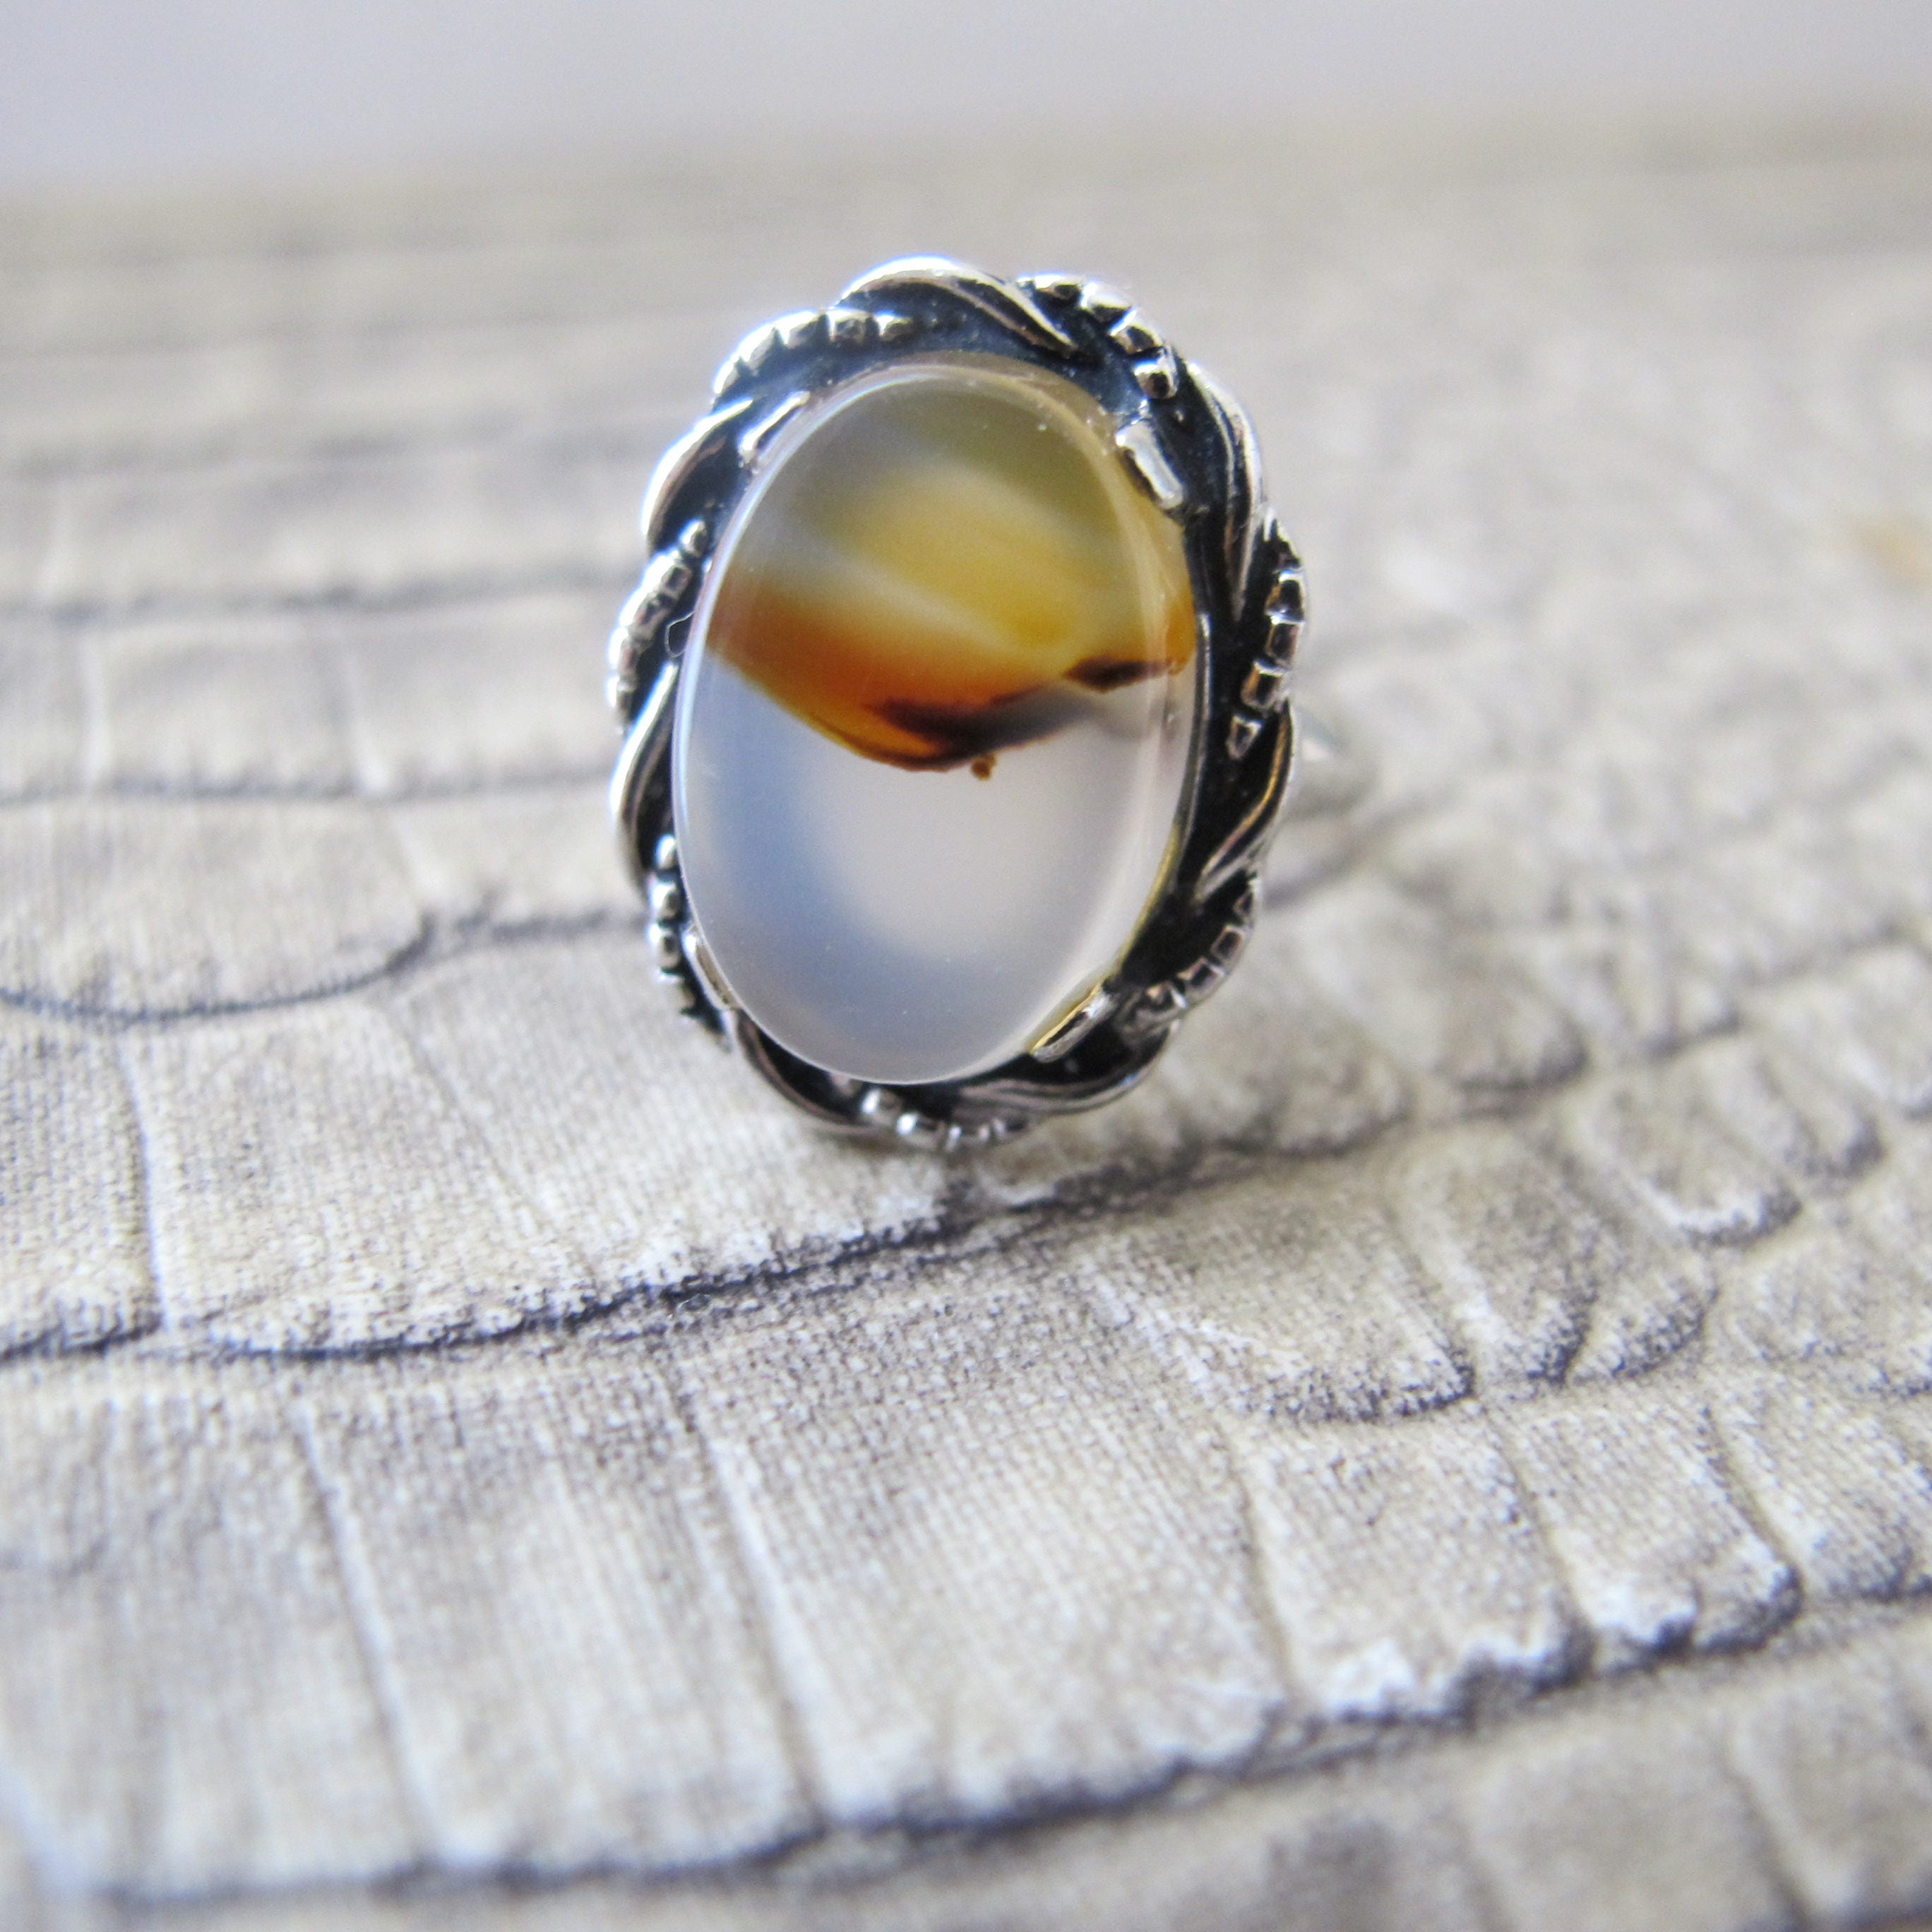 gallery lyst plated stacking vinader monica nugget agate rings siren rose grey jewelry gold ring